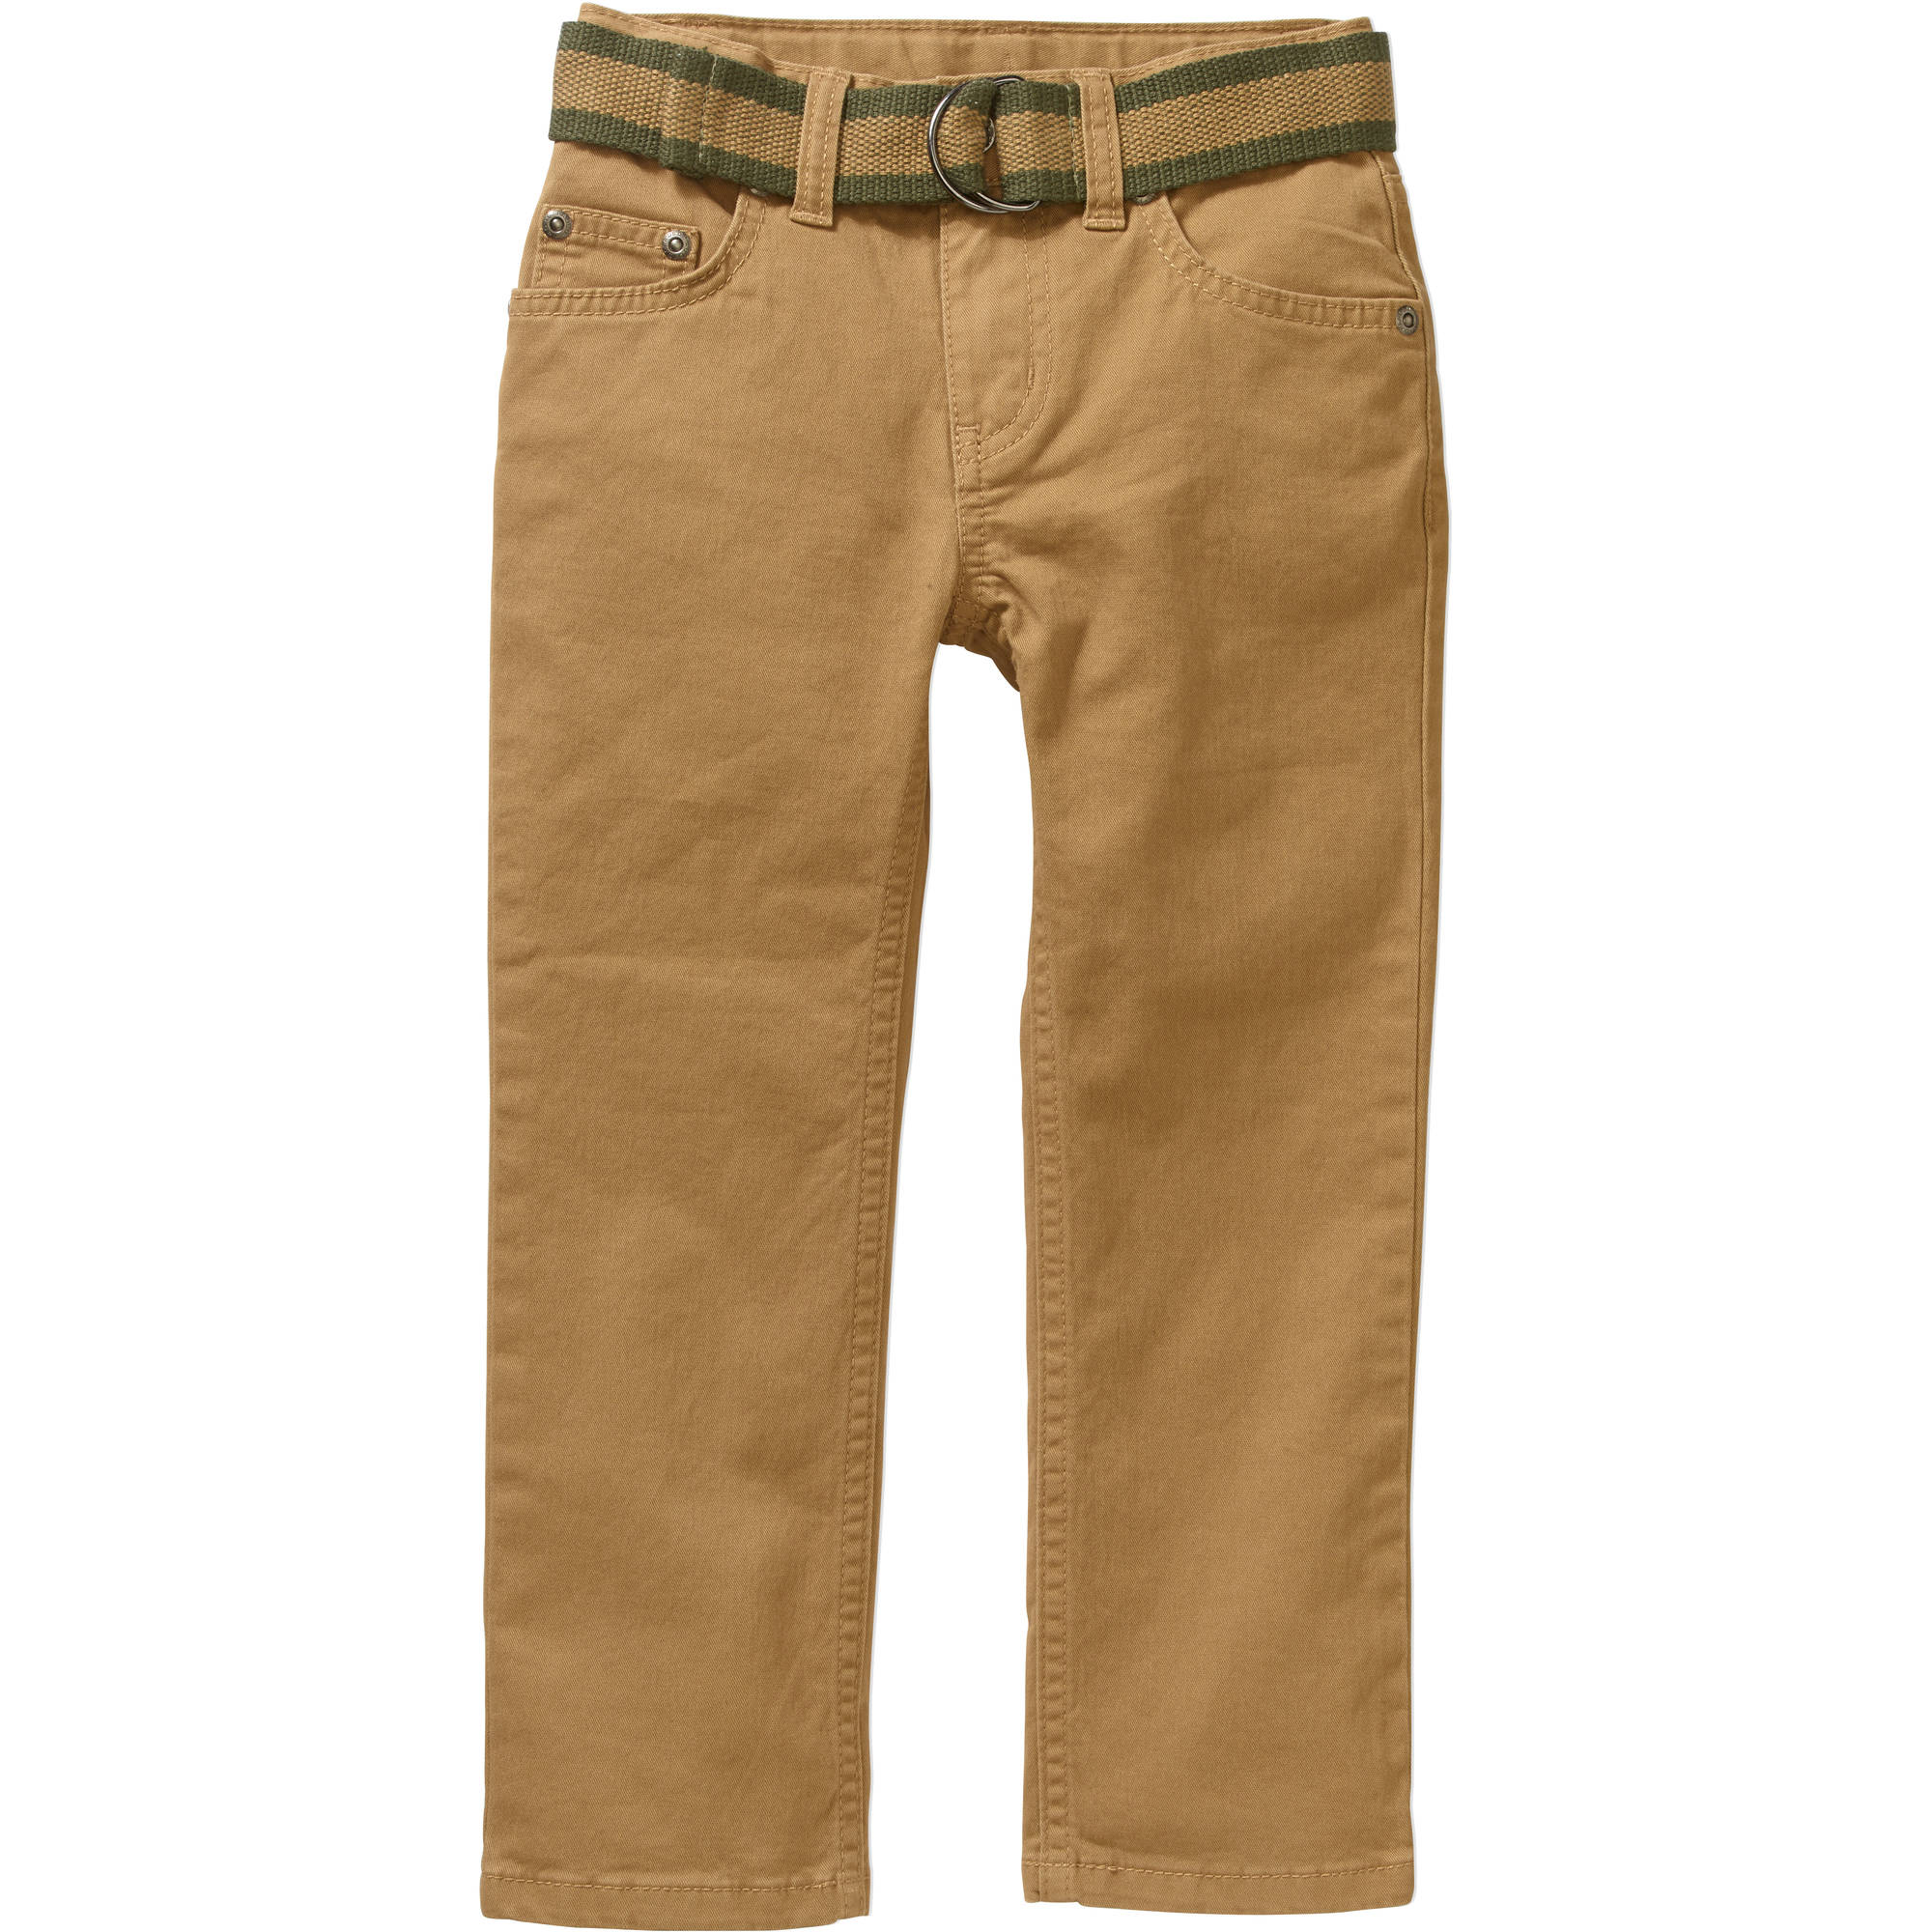 Faded Glory Boys' Belted Twill Chino Pants